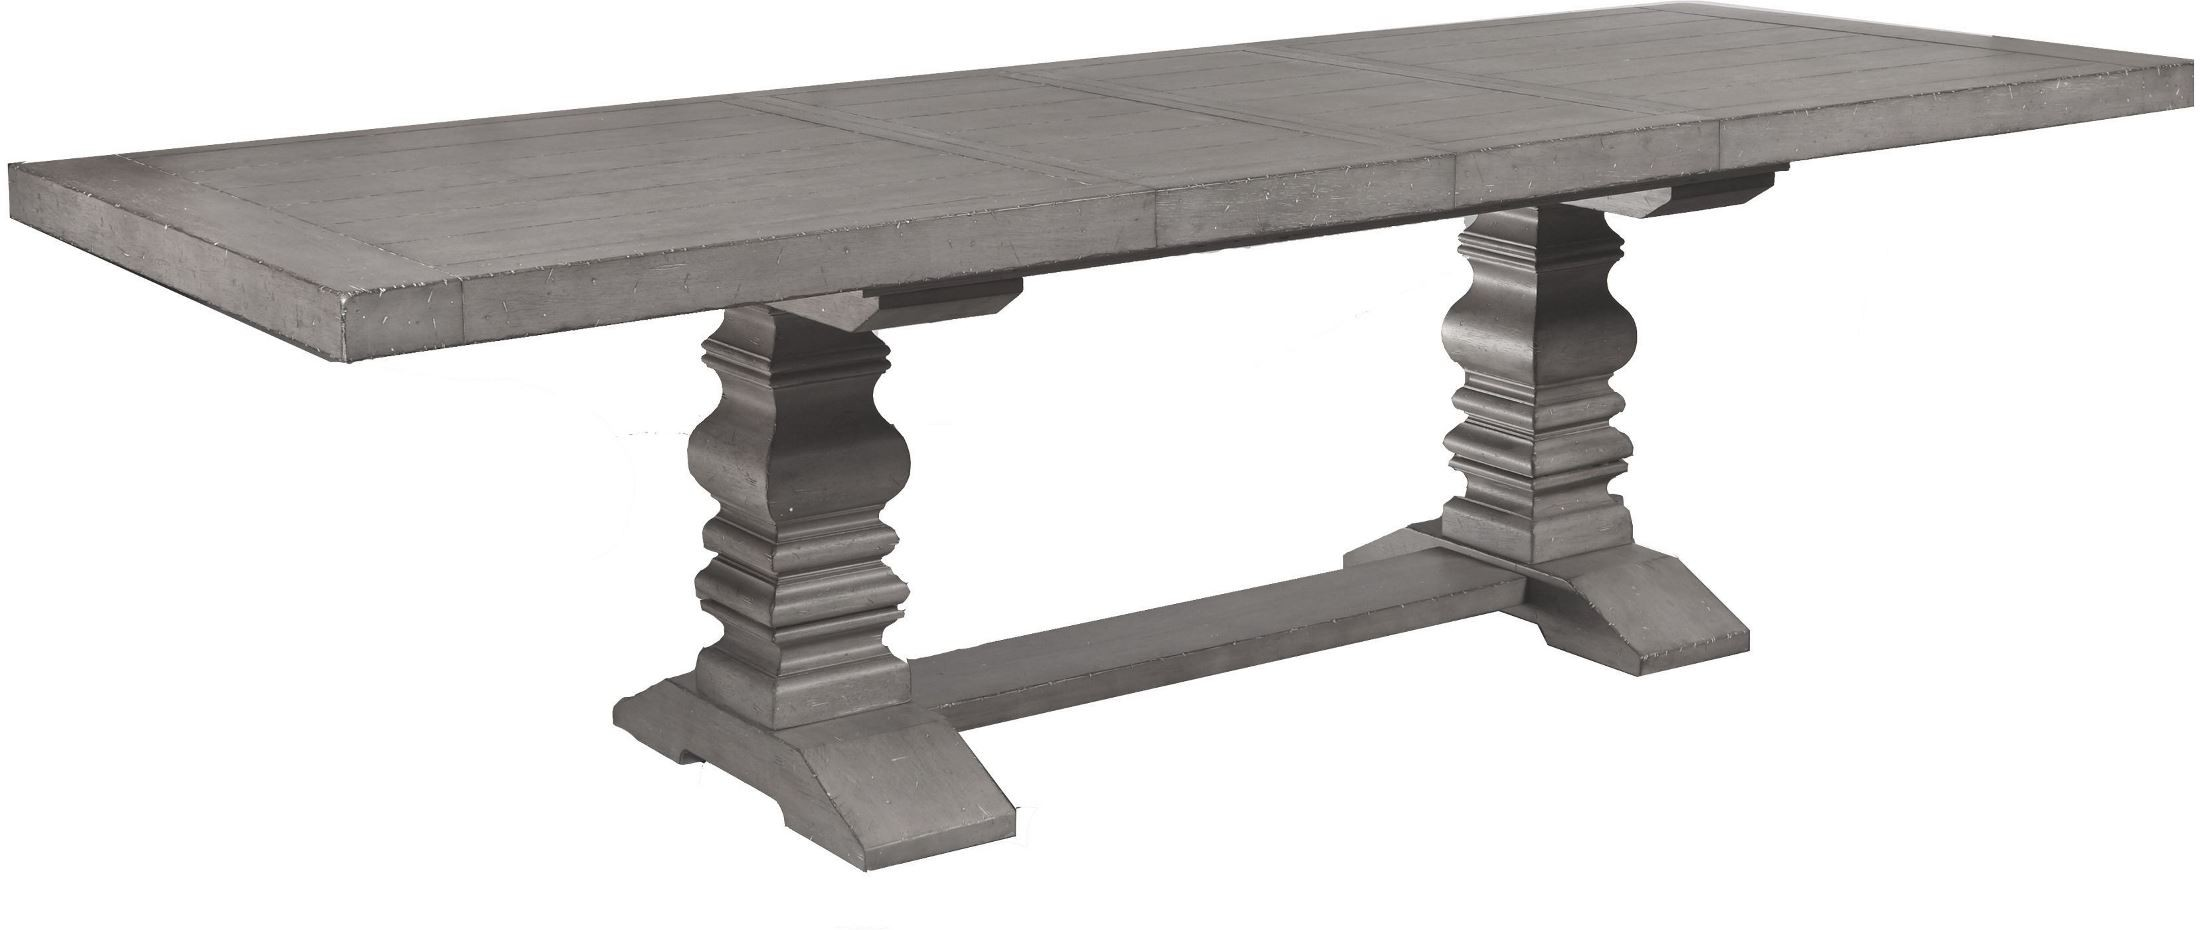 Prospect Hill Gray Rectangular Extendable Pedestal Dining  : s082 131a131bs5 from colemanfurniture.com size 2200 x 930 jpeg 151kB